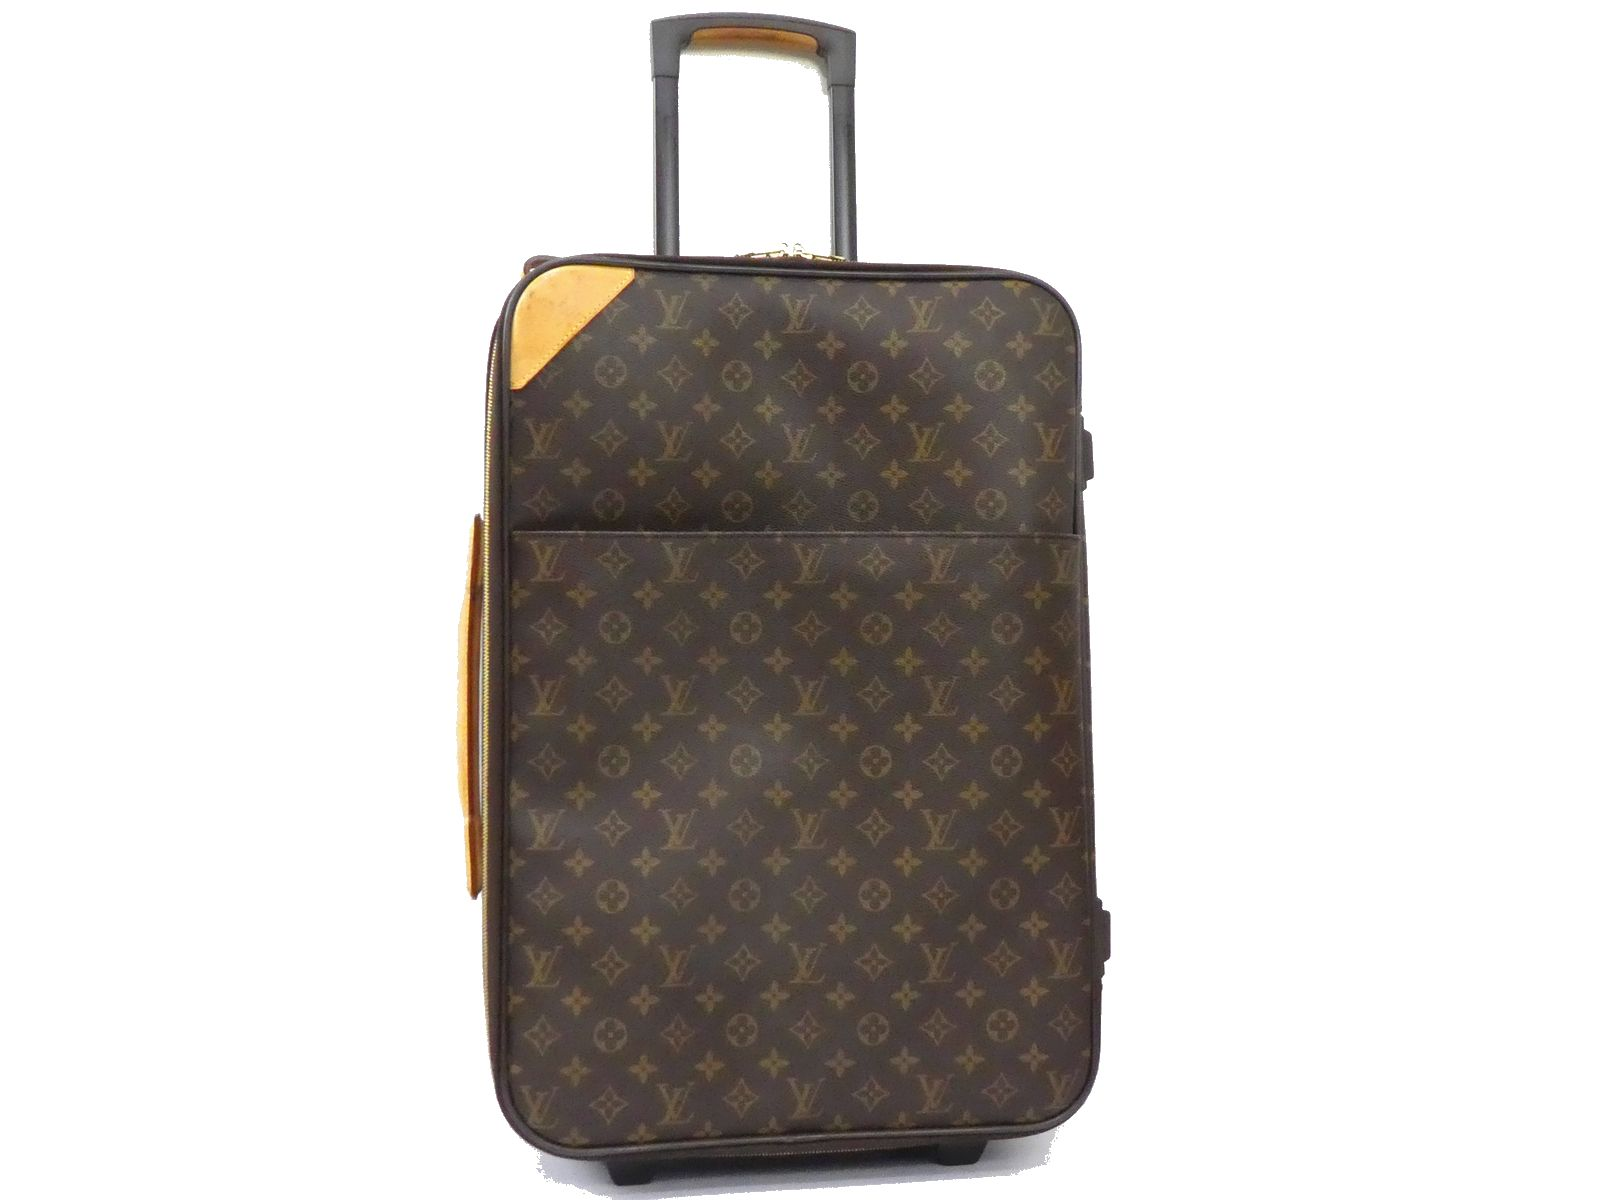 11512711850a Details about Auth LOUIS VUITTON Monogram Suitcase Carry Bag Luggage Travel  Pegase 55 D1070